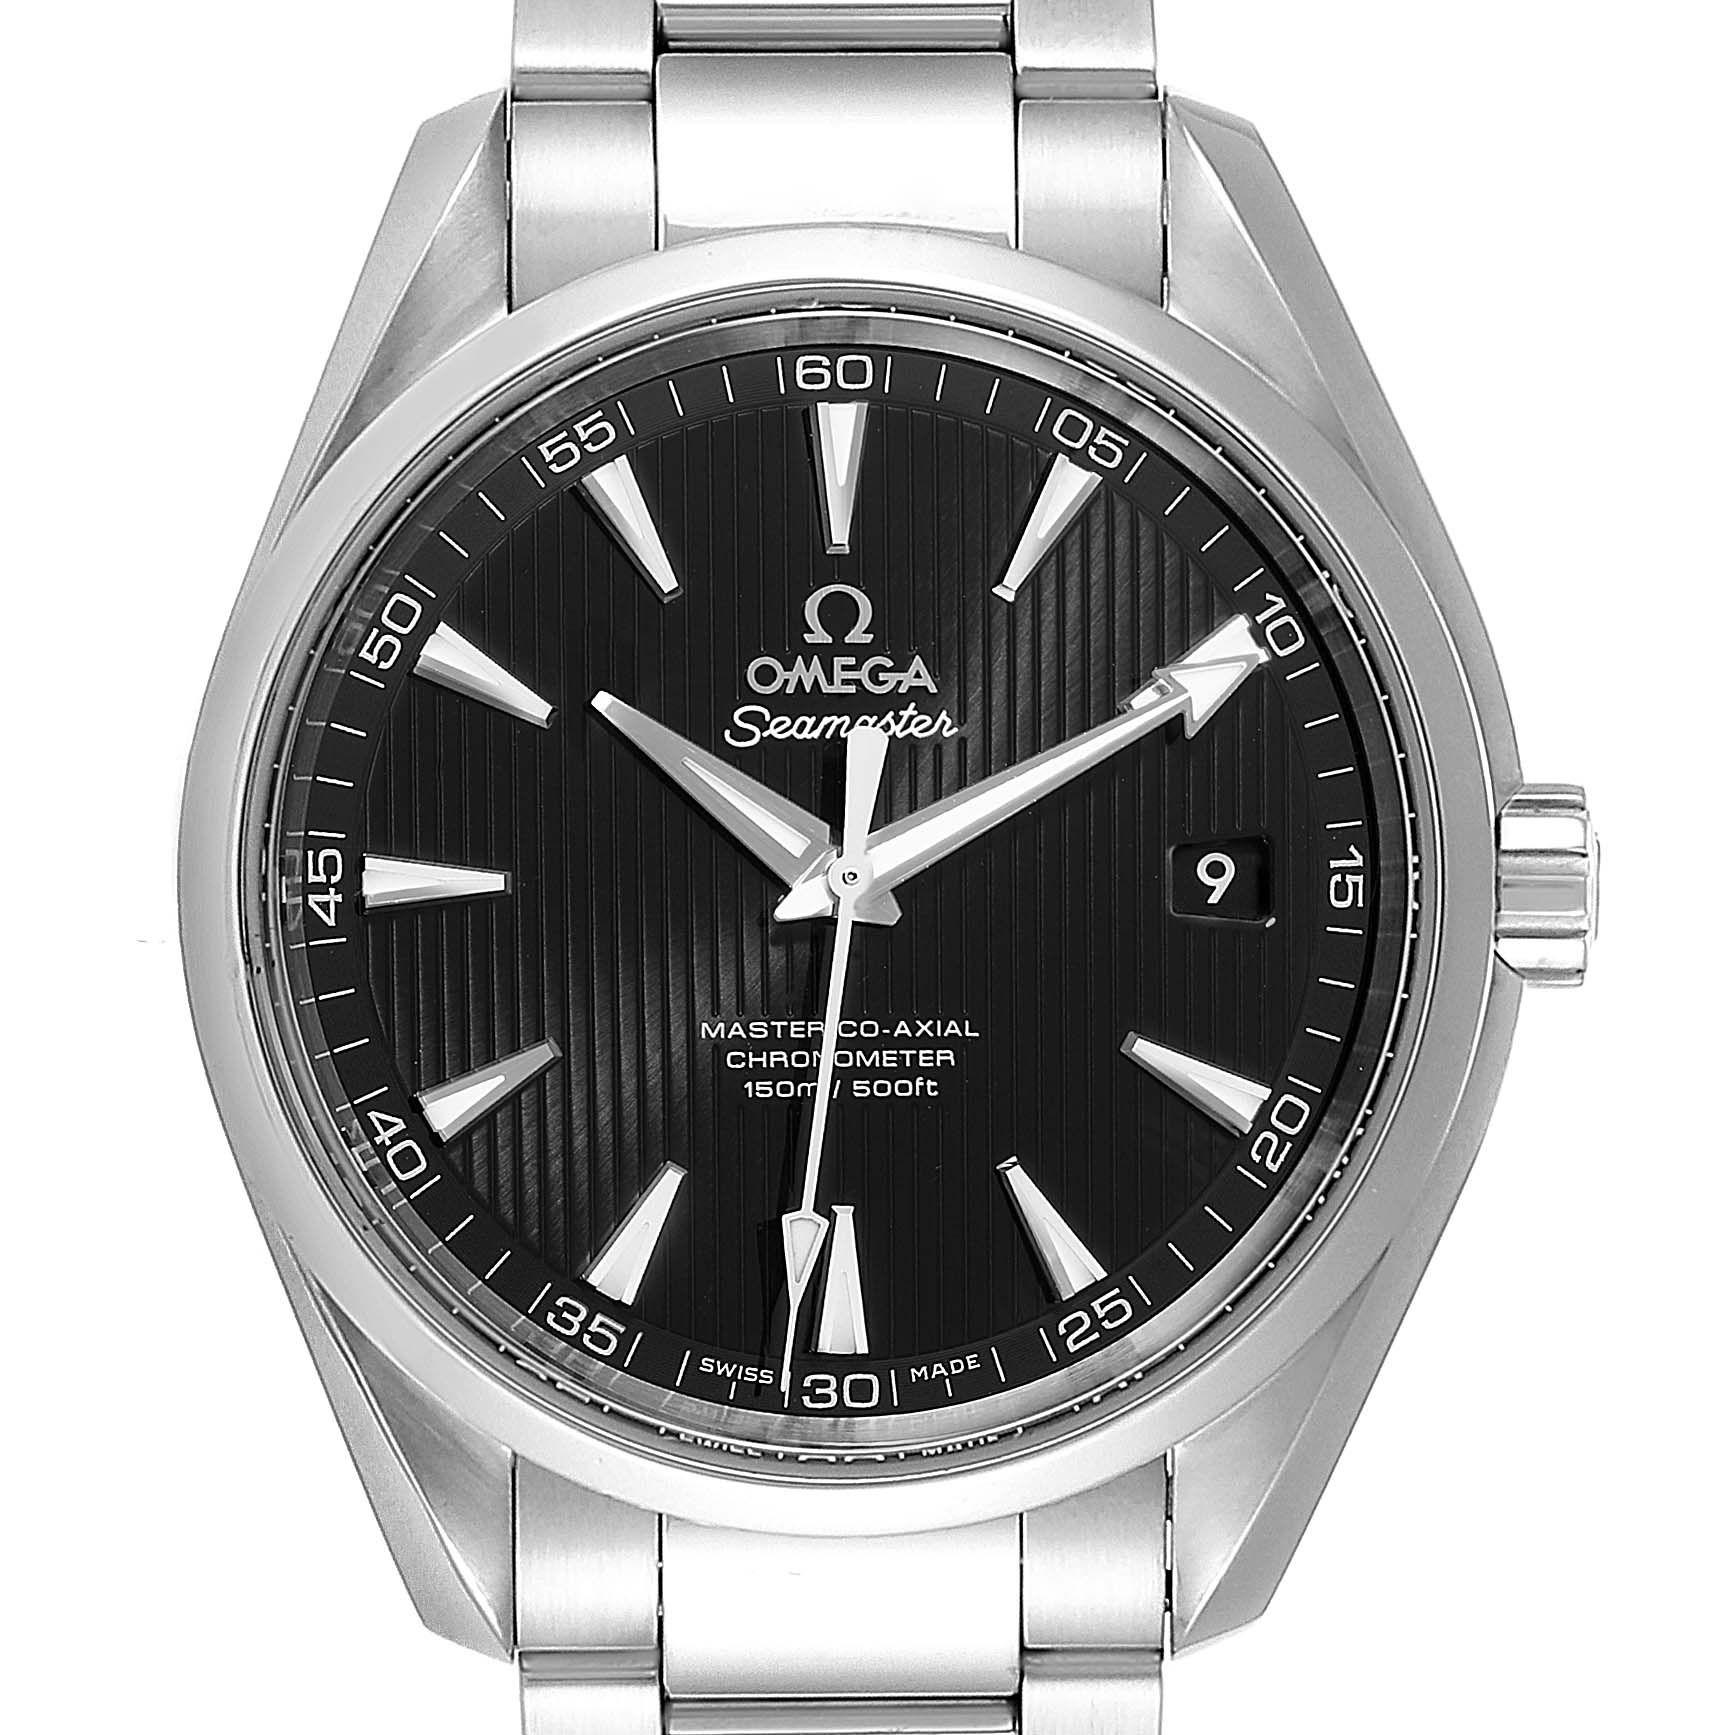 Omega Seamaster Aqua Terra Steel Mens Watch 231.10.42.21.01.003 Box Card